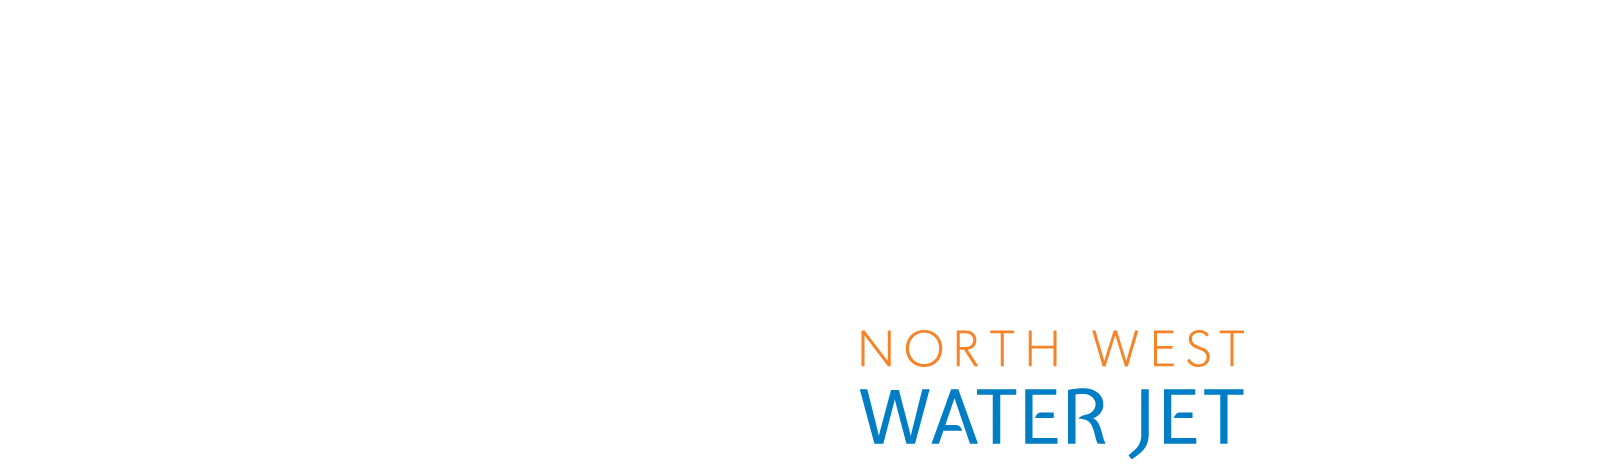 Northwest Waterjet Logo